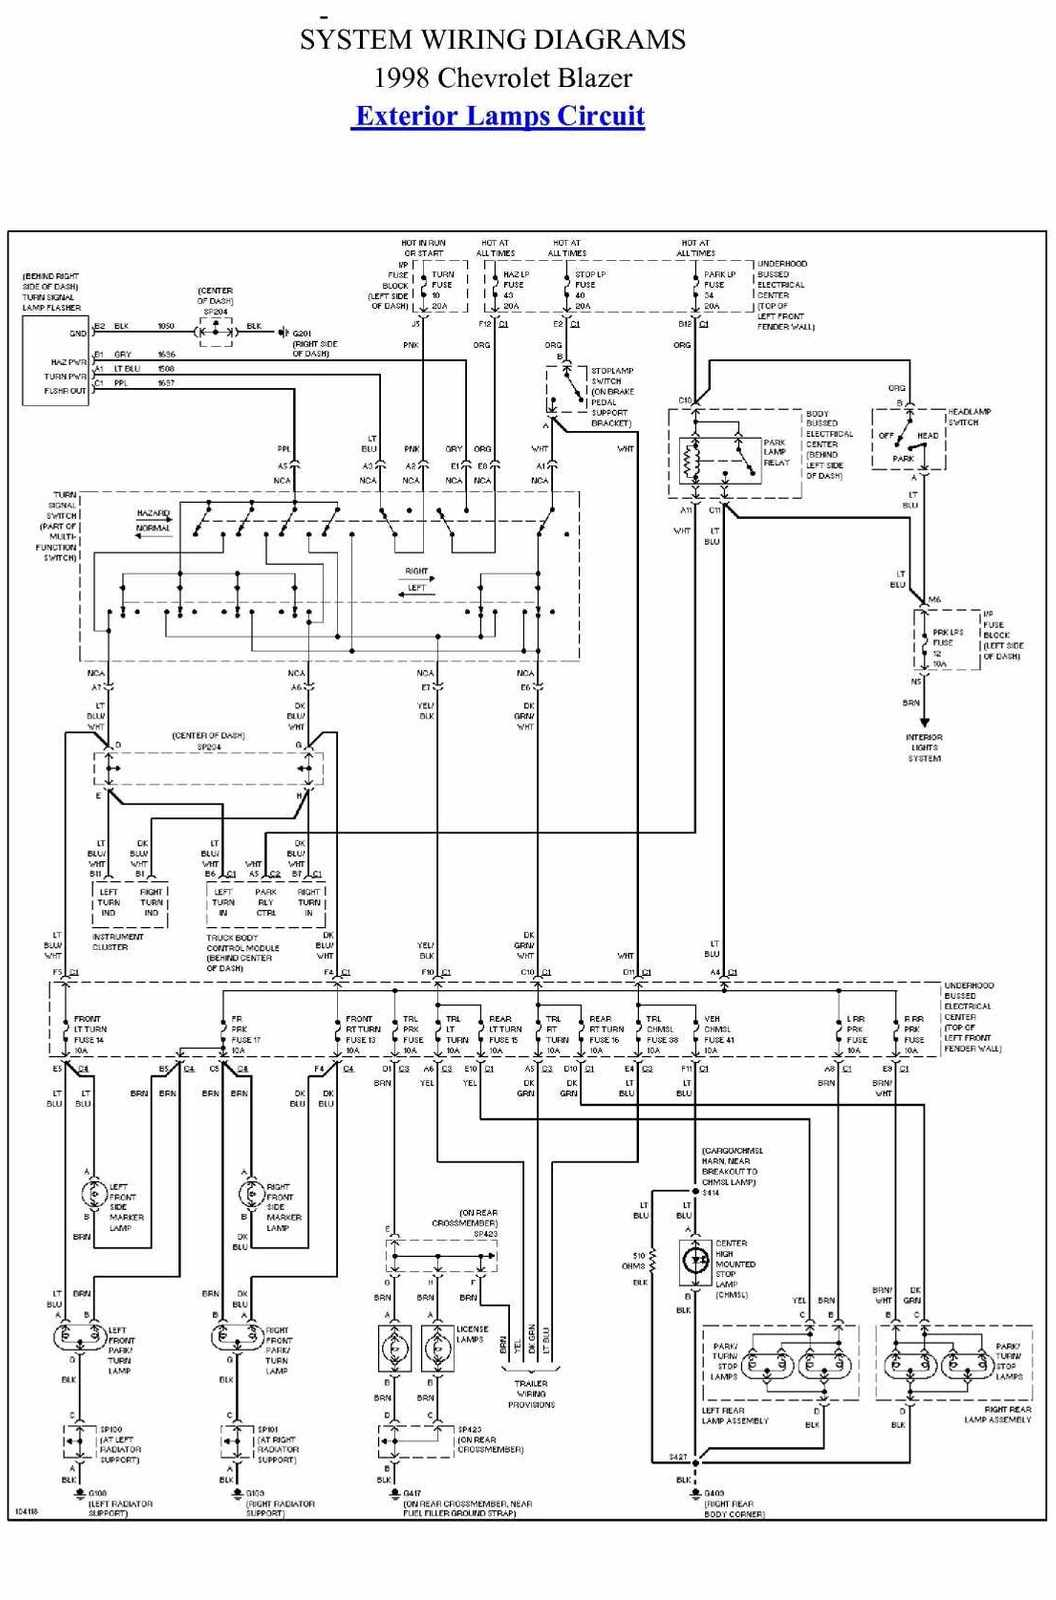 1998 chevy blazer electrical wiring diagram image details rh motogurumag  com 98 chevy blazer wiring diagram 1998 chevy blazer alternator wiring  diagram